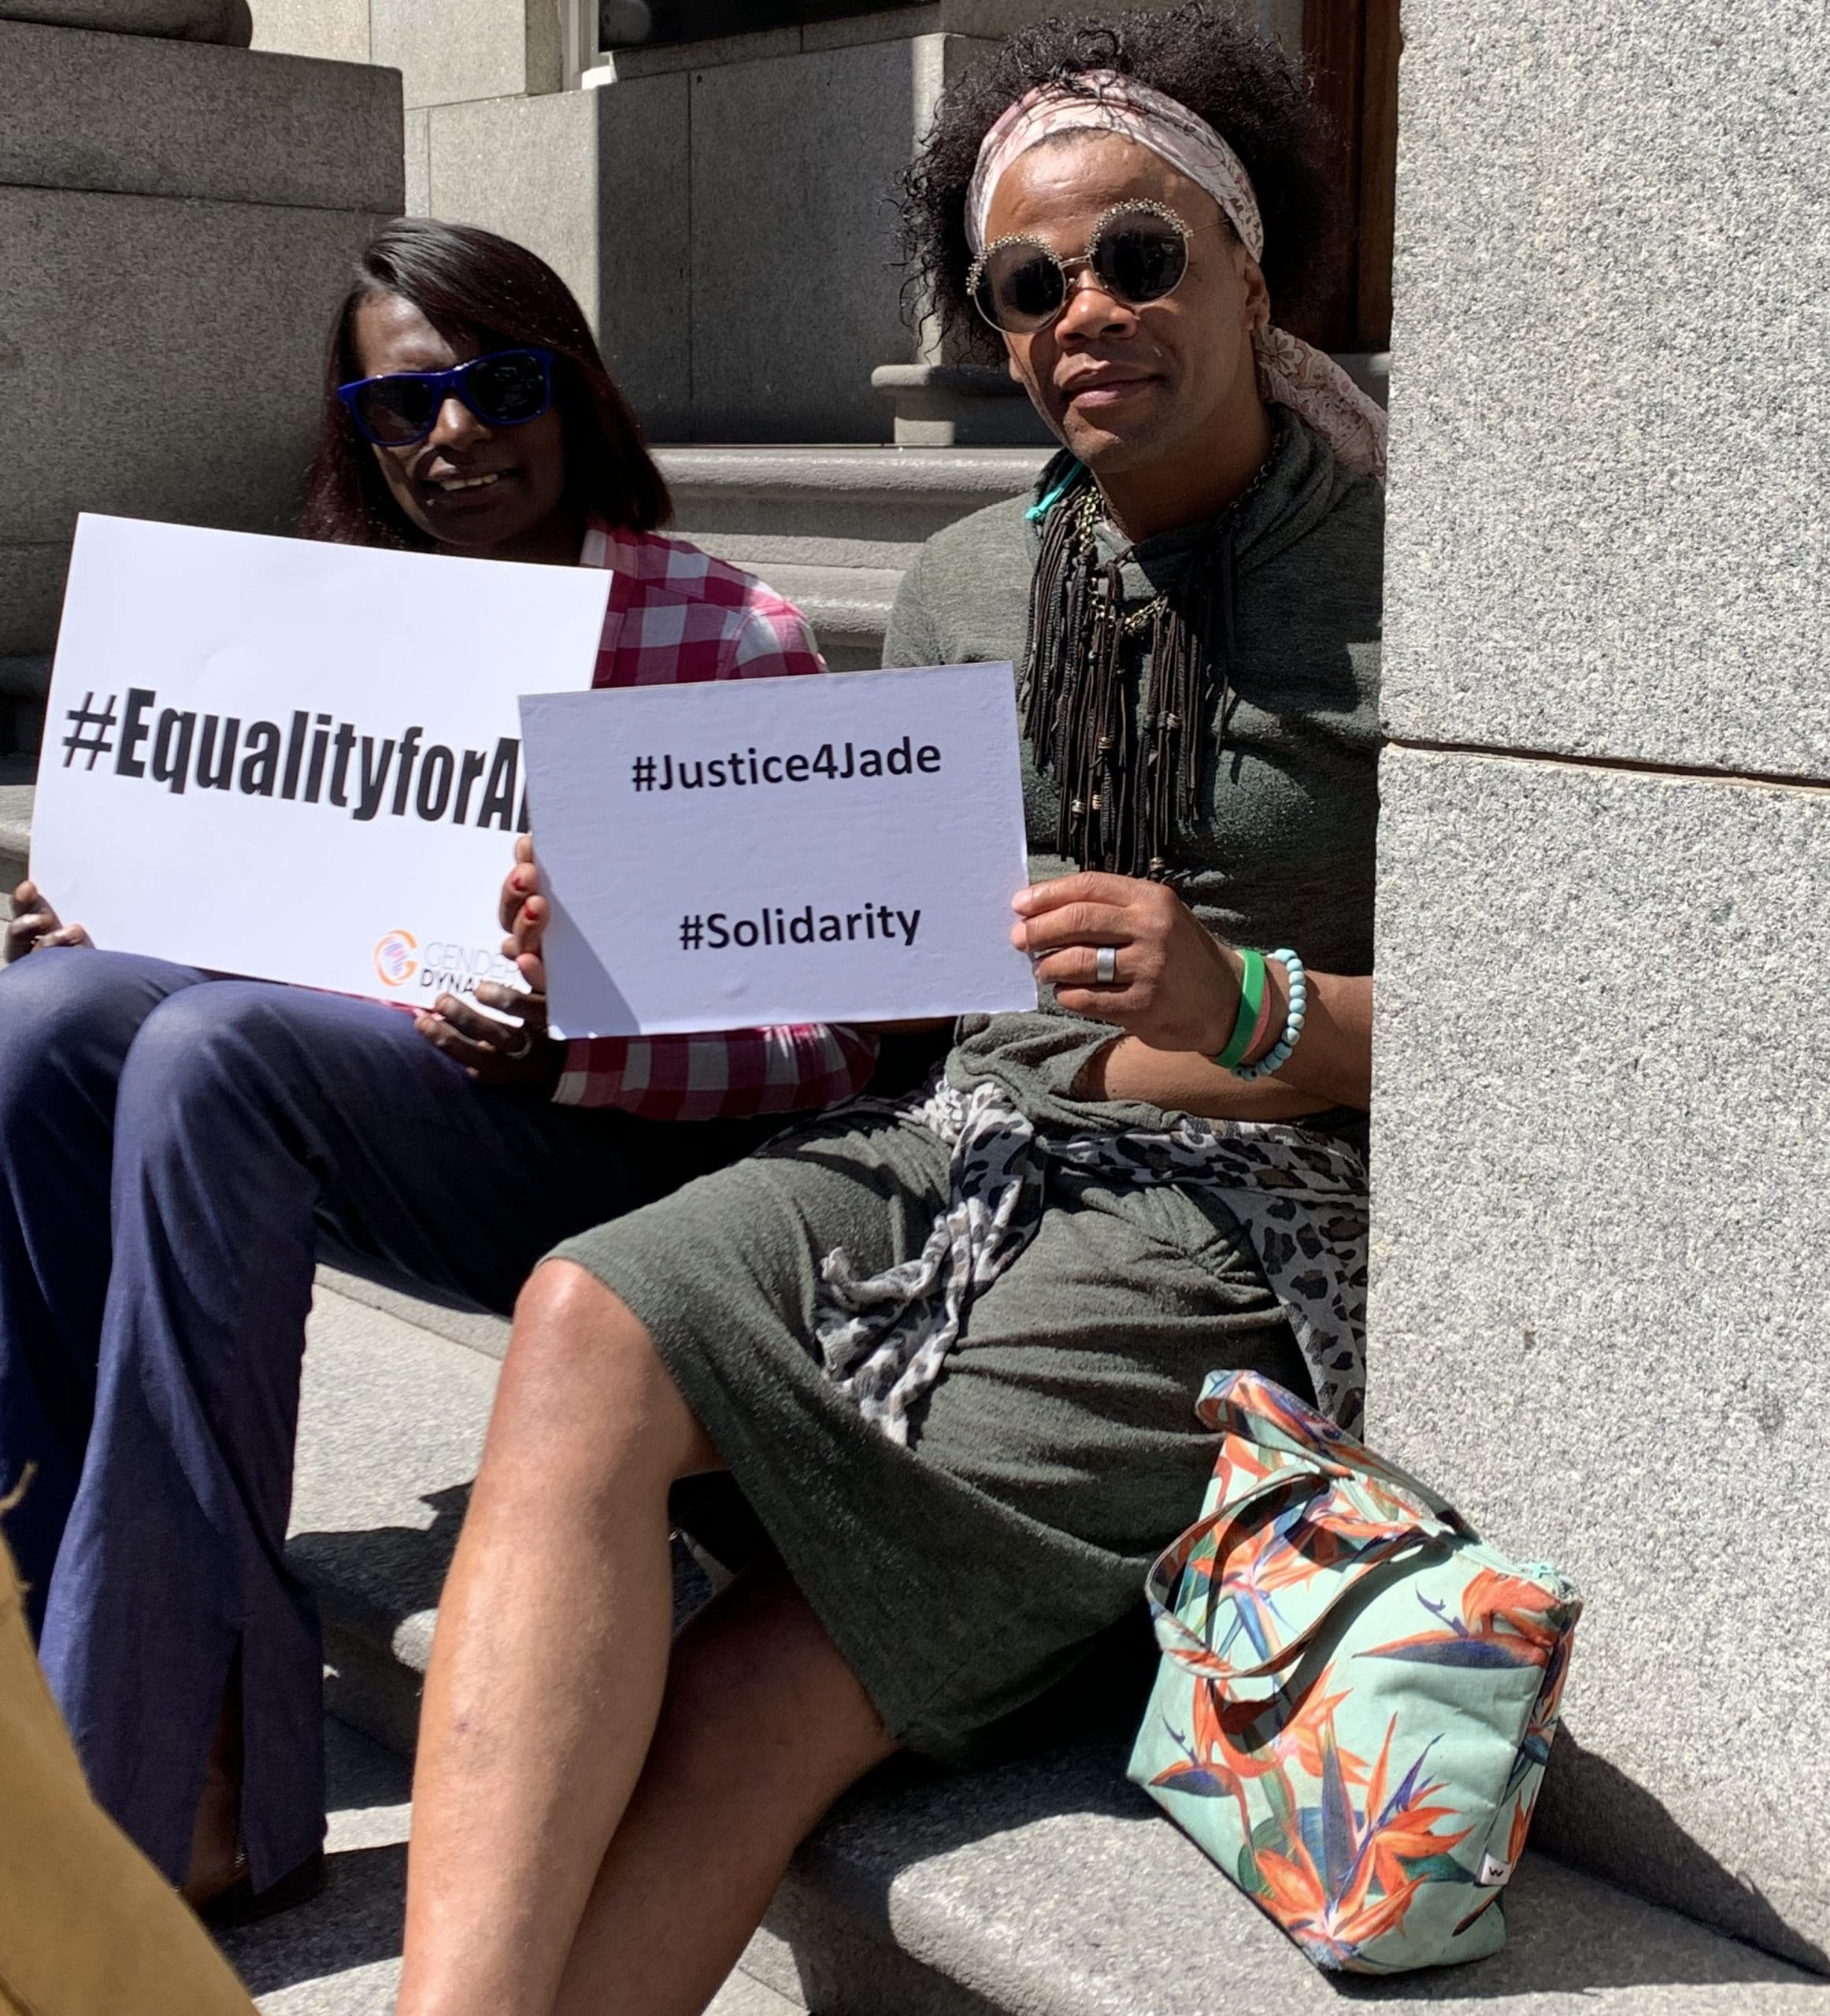 Two protestors sit on the courthouse steps holding signs that read, '#EqualityforAll' and '#Justice4Jade #Solidarity'.